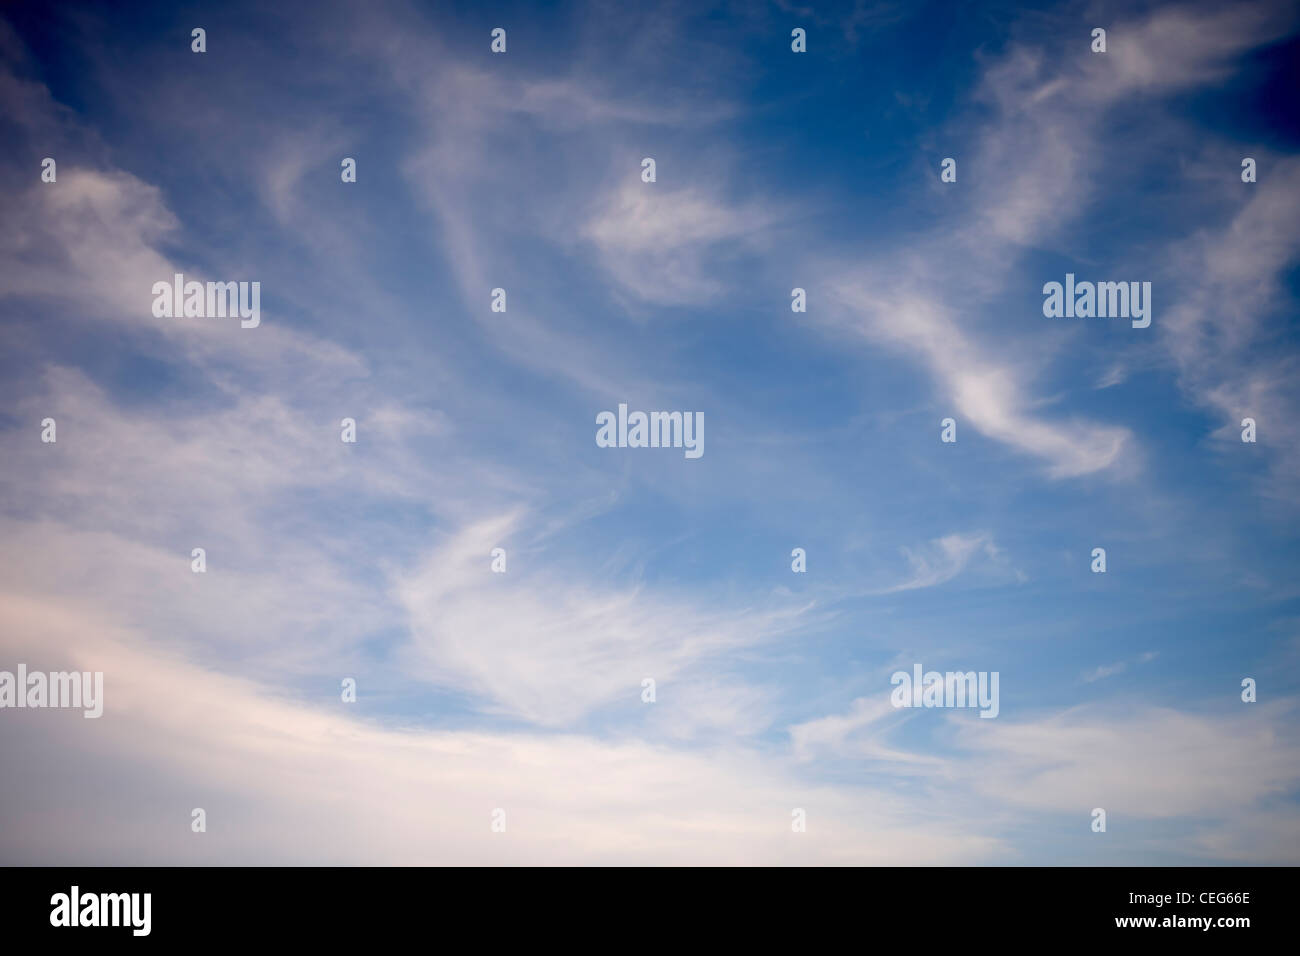 blue sky with wispy clouds - Stock Image